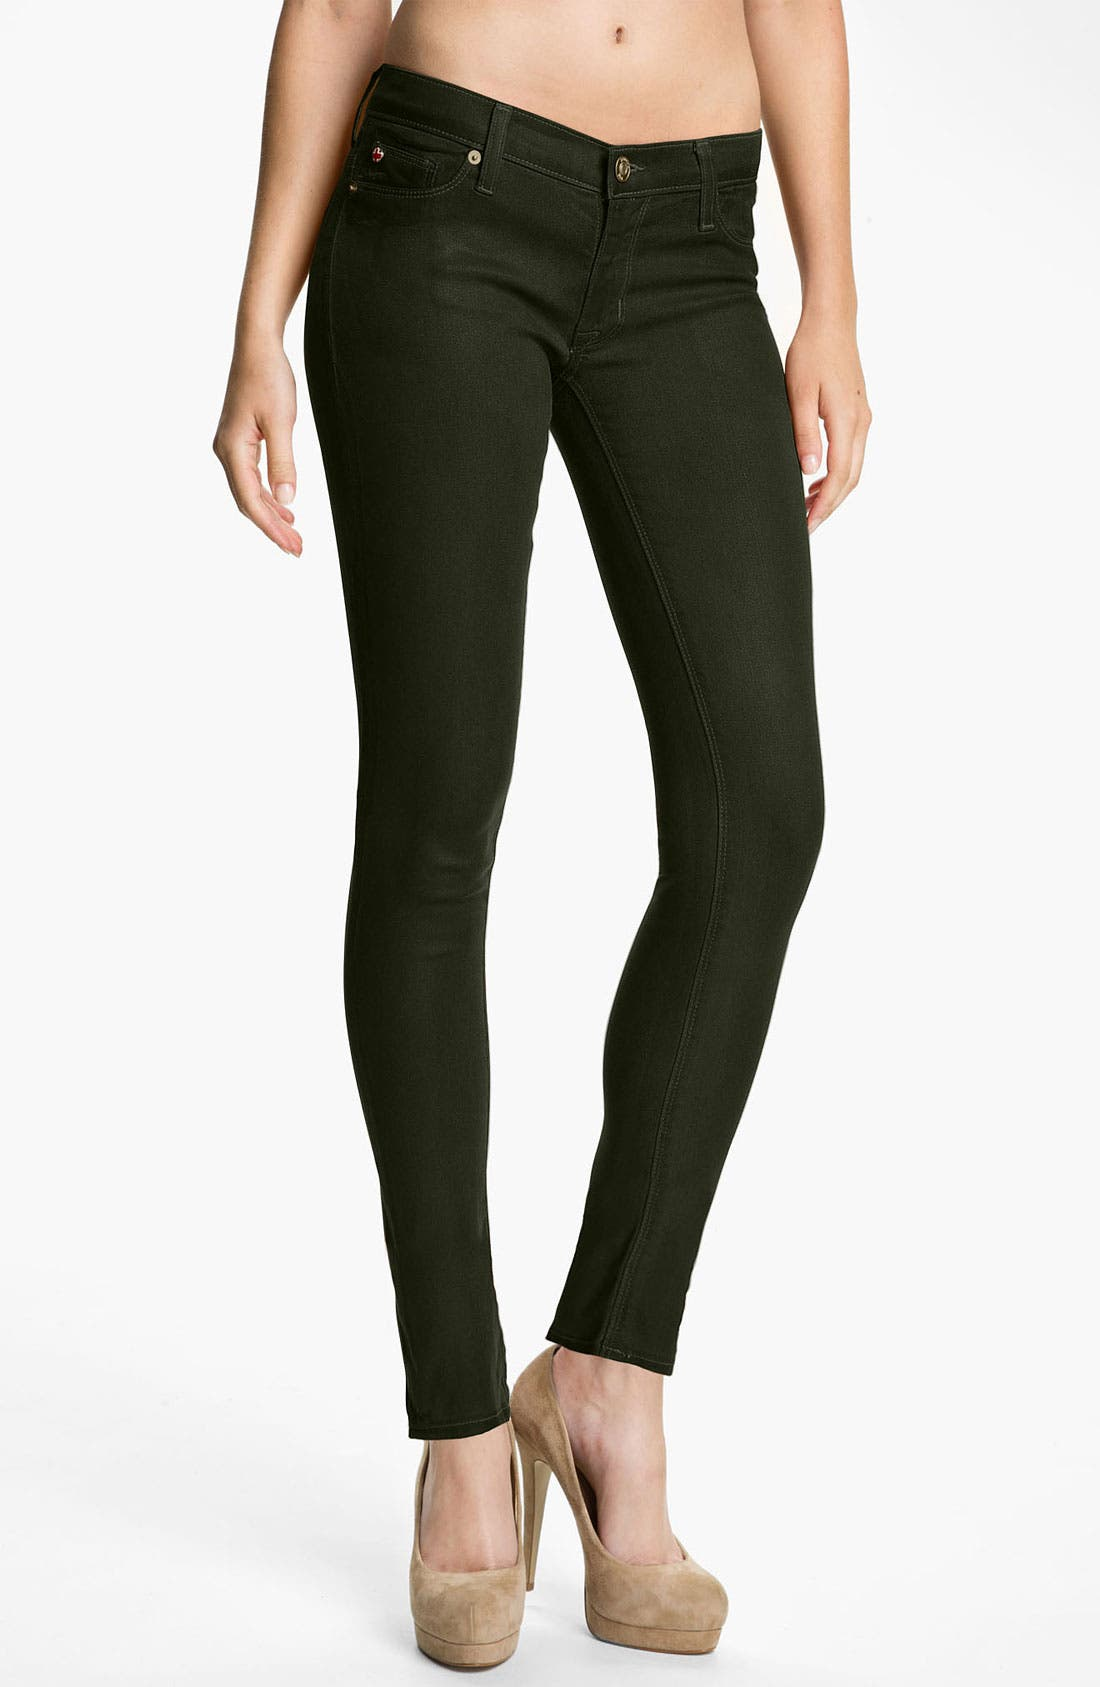 Alternate Image 1 Selected - Hudson Jeans 'Krista' Super Skinny Jeans (Fern Wax)